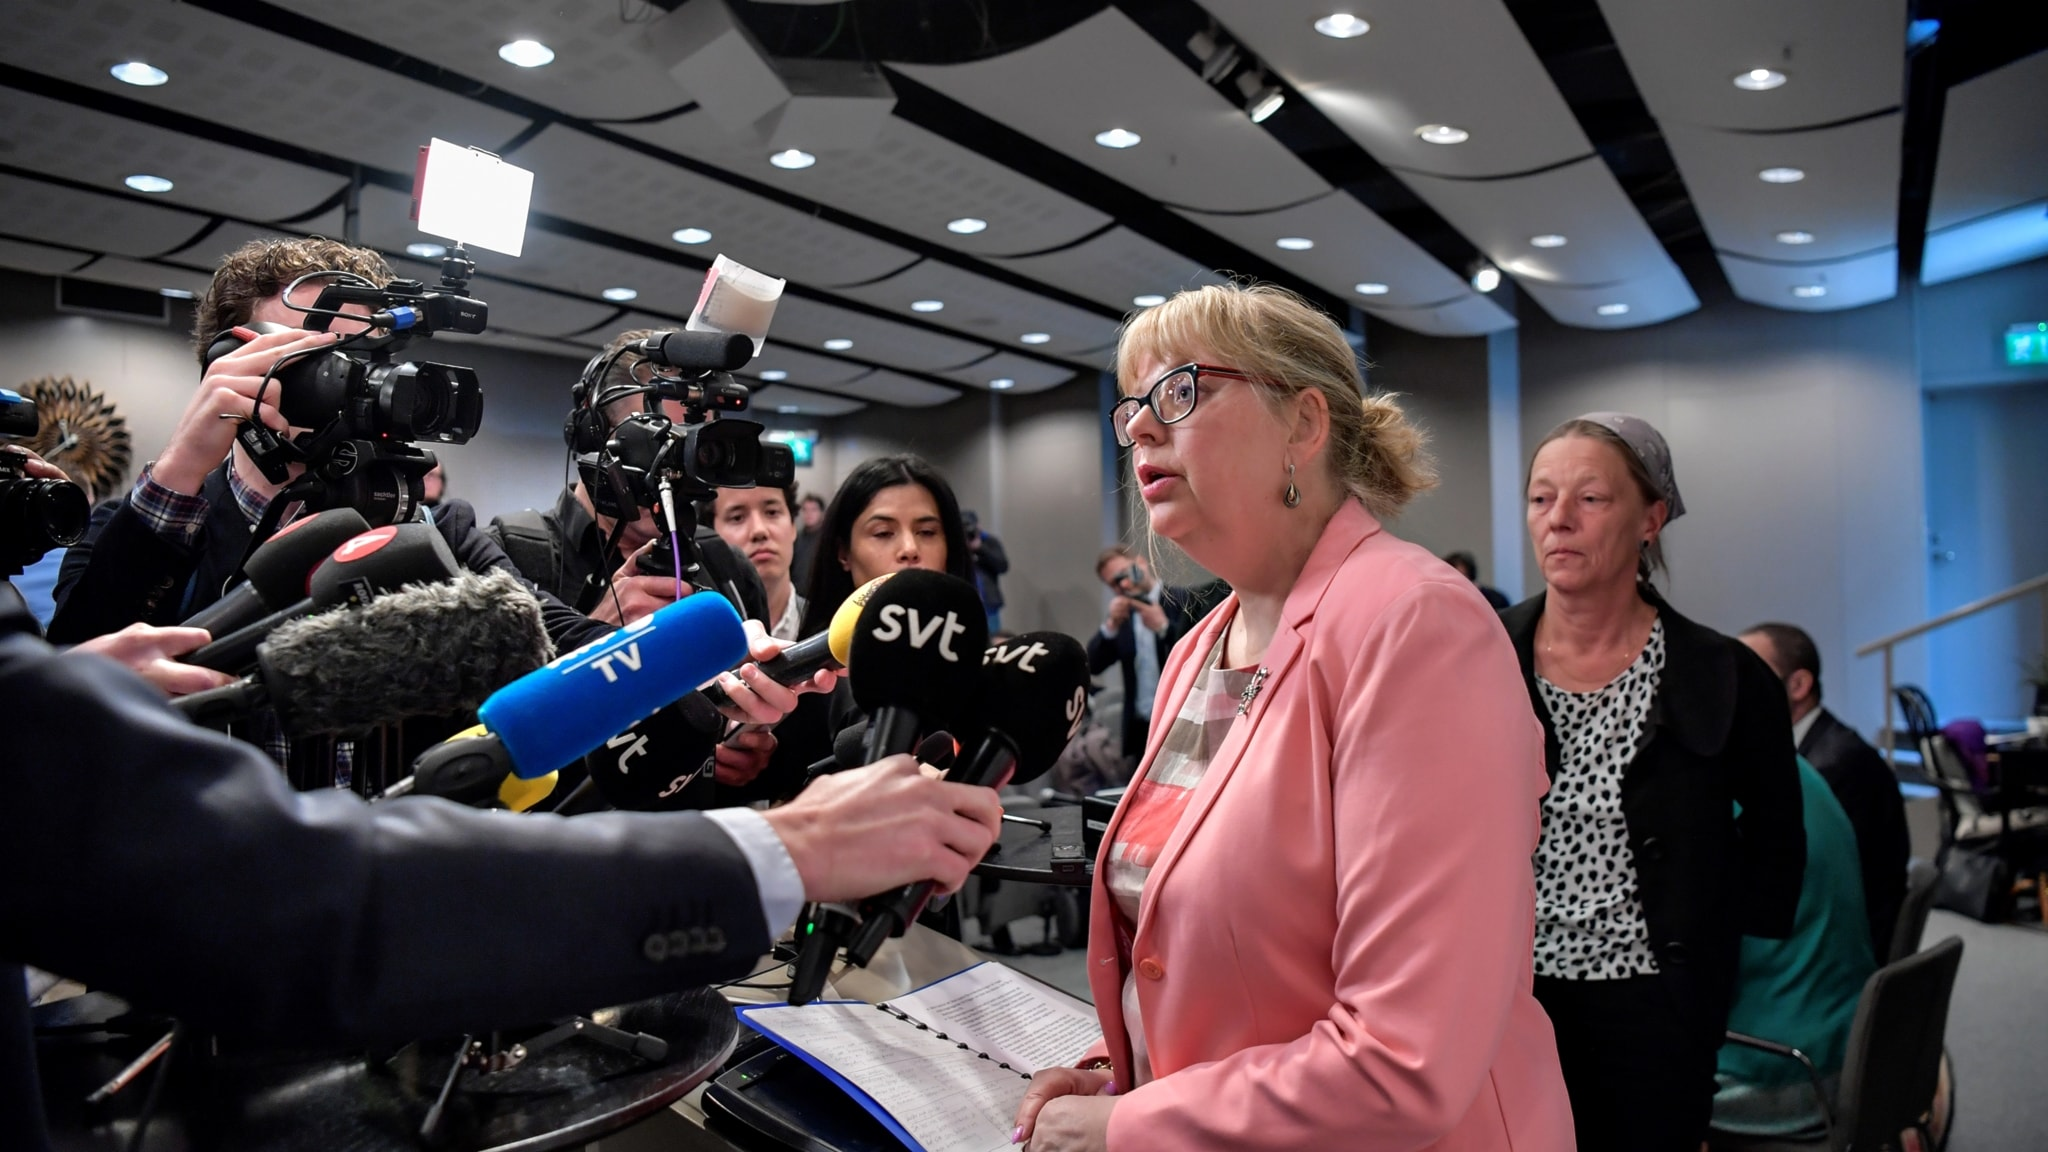 A woman in glasses speaking into mics held by reporters.